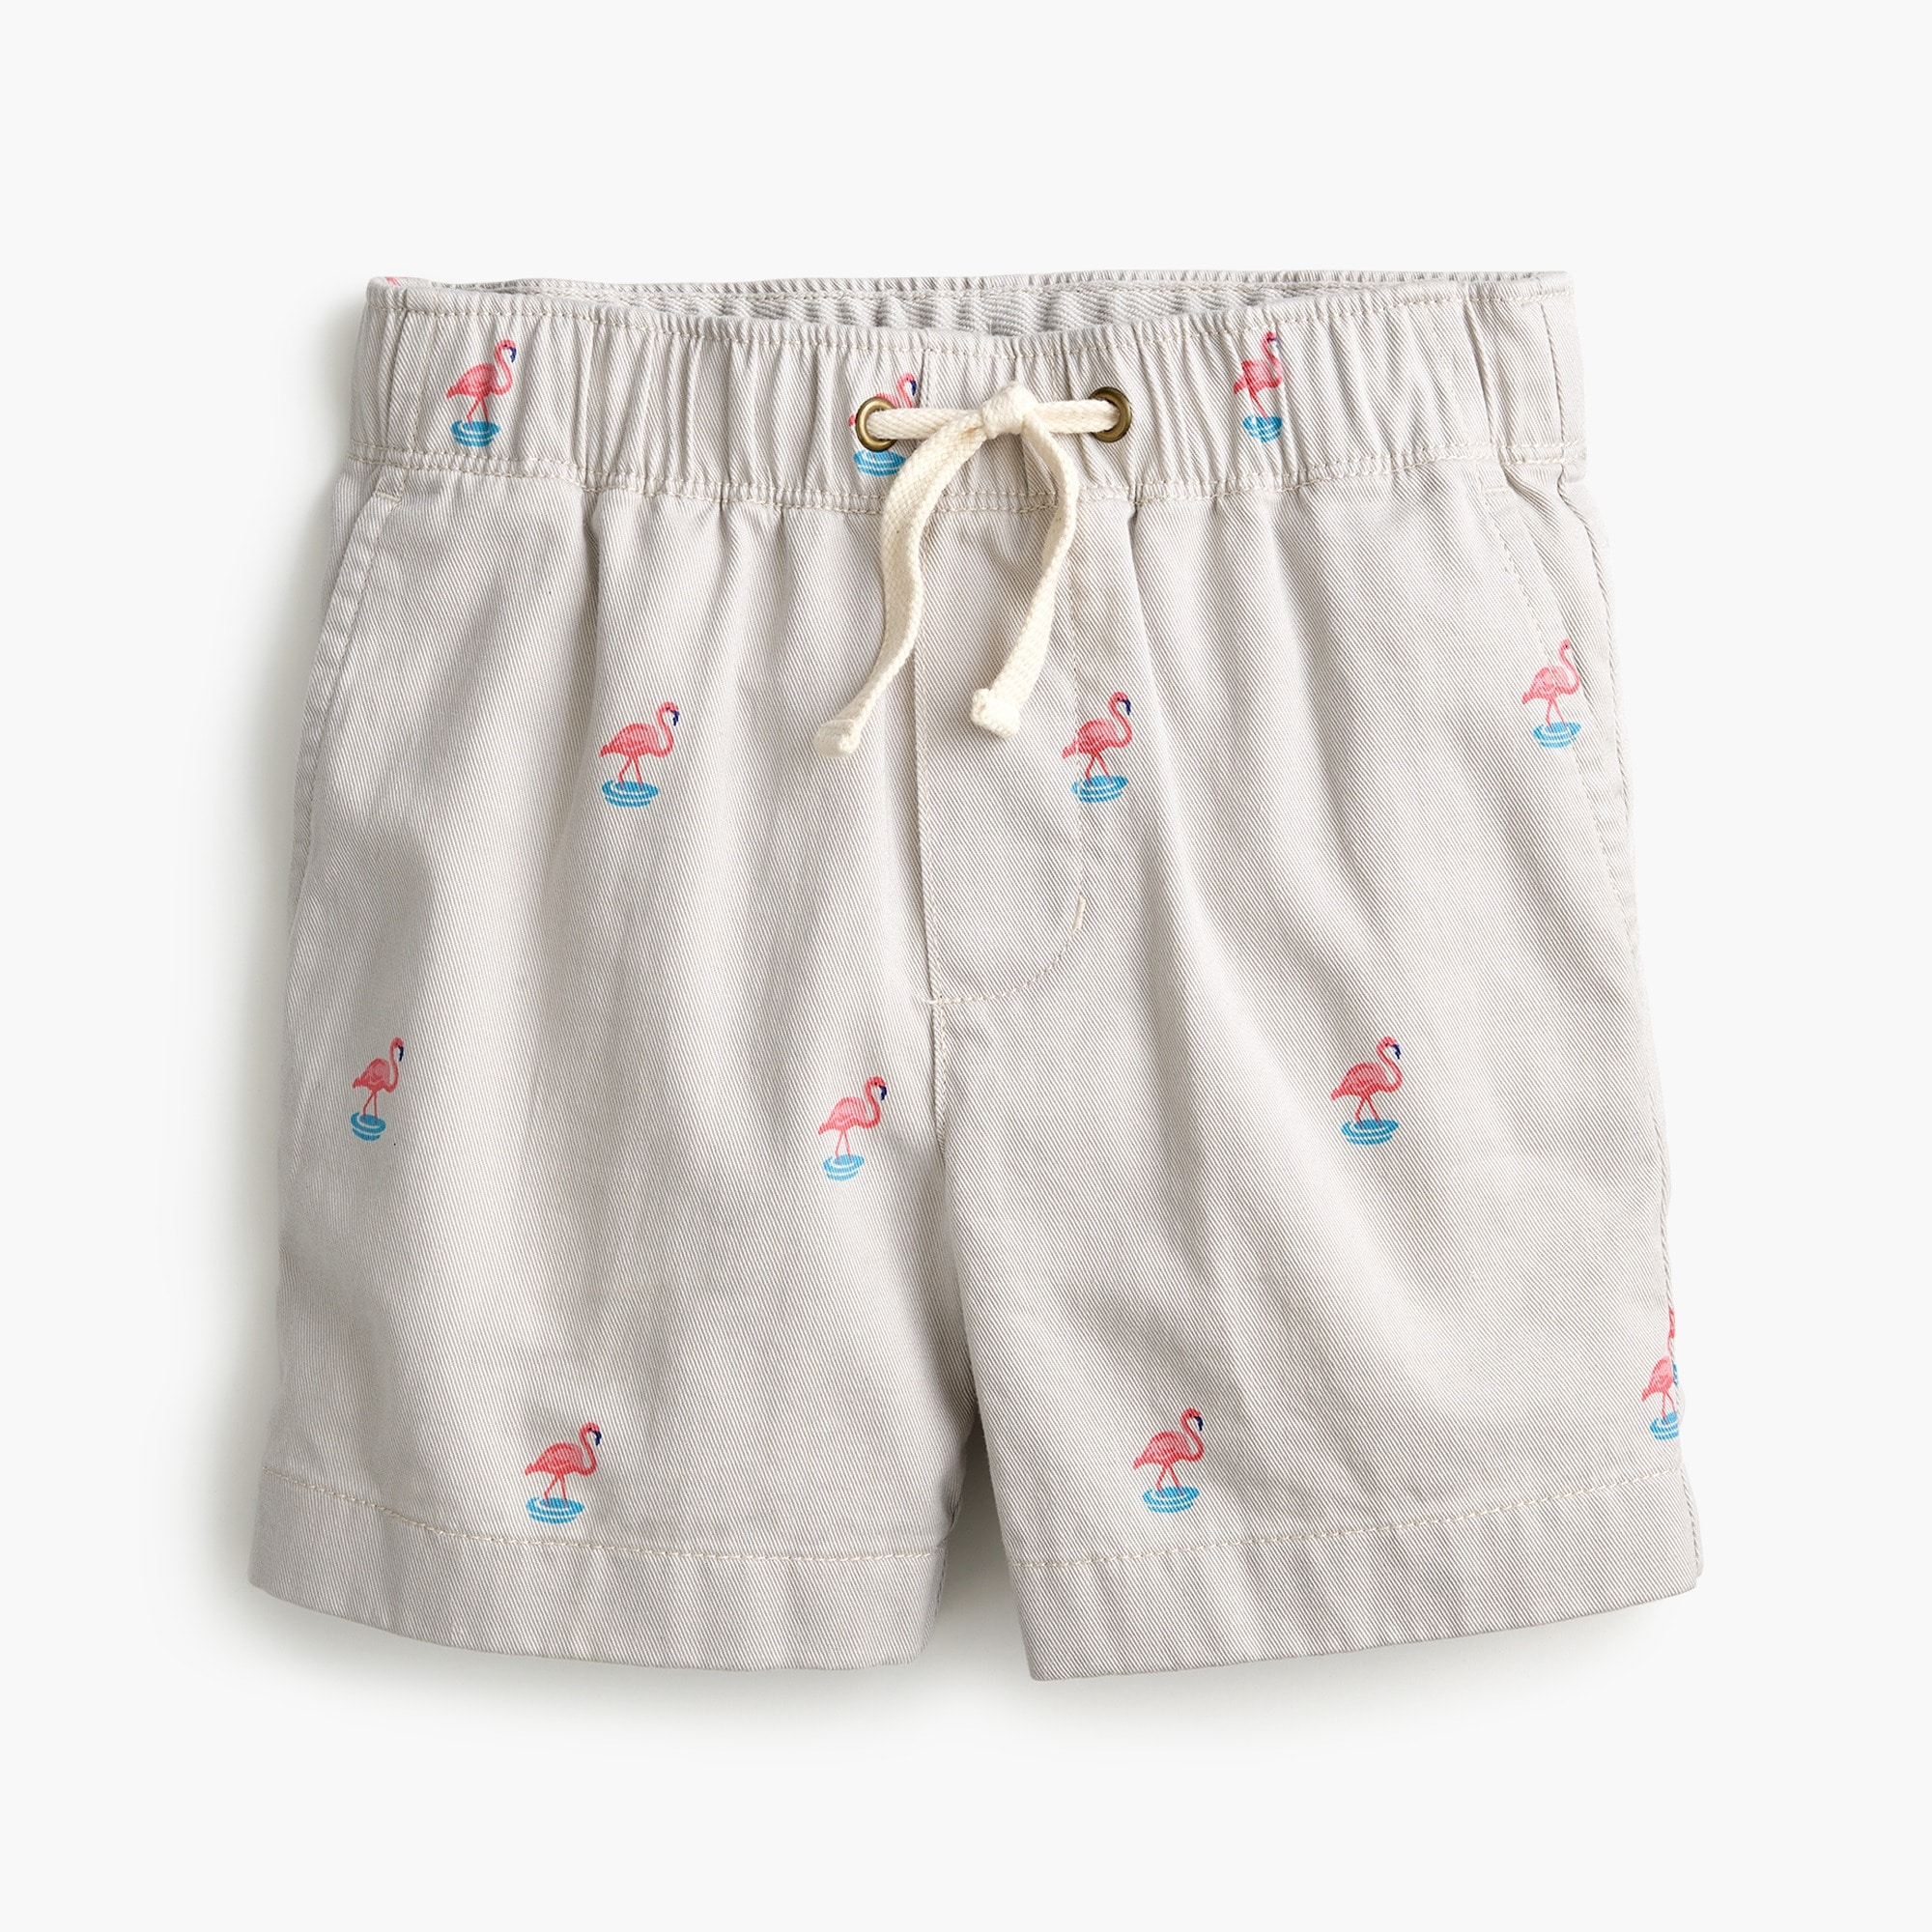 Boys' Dock critter short in flamingo